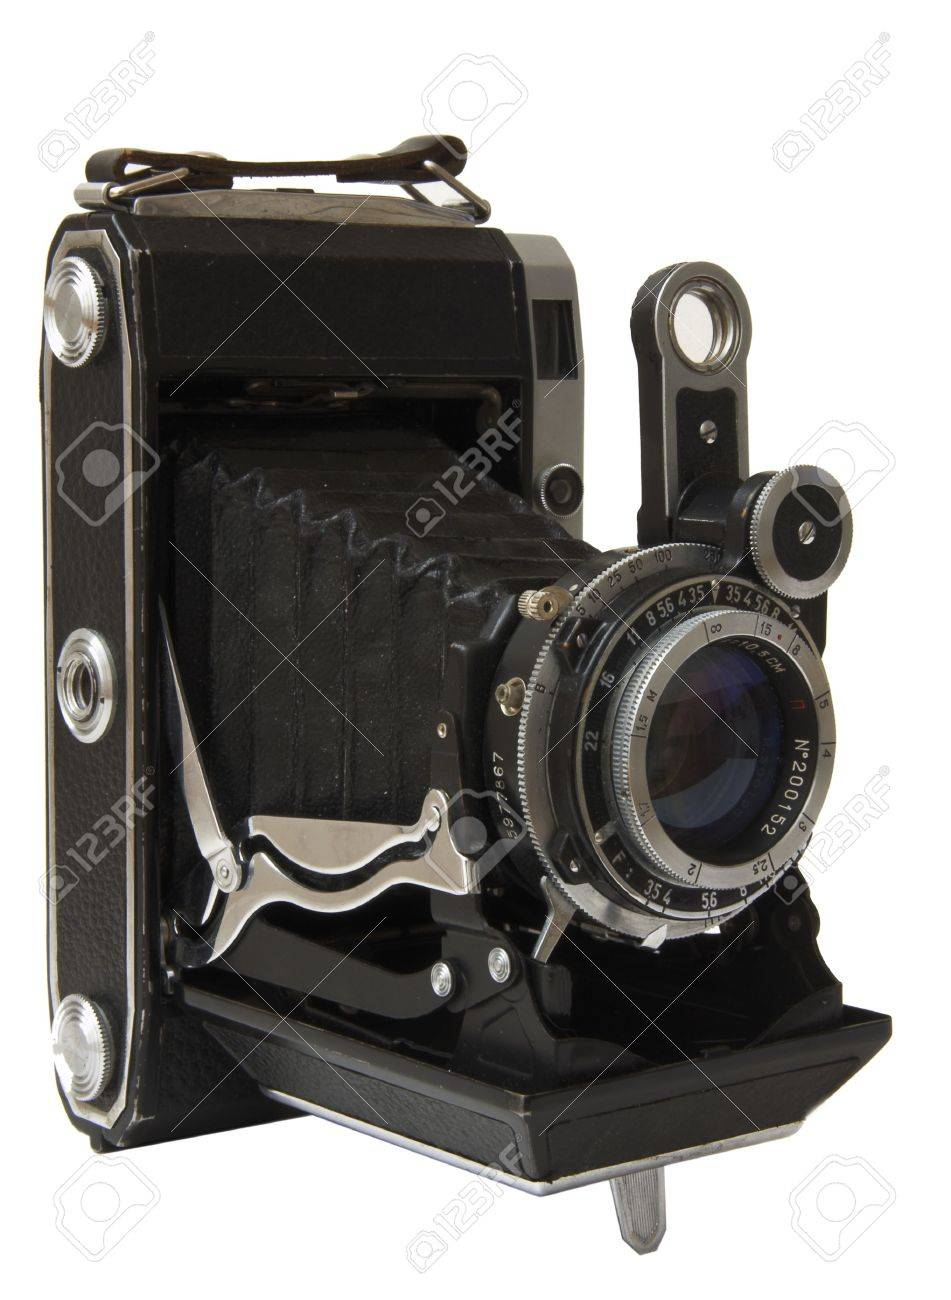 online retailer a7327 32451 roll film Retro old camera type 120 Stock Photo - 2955899